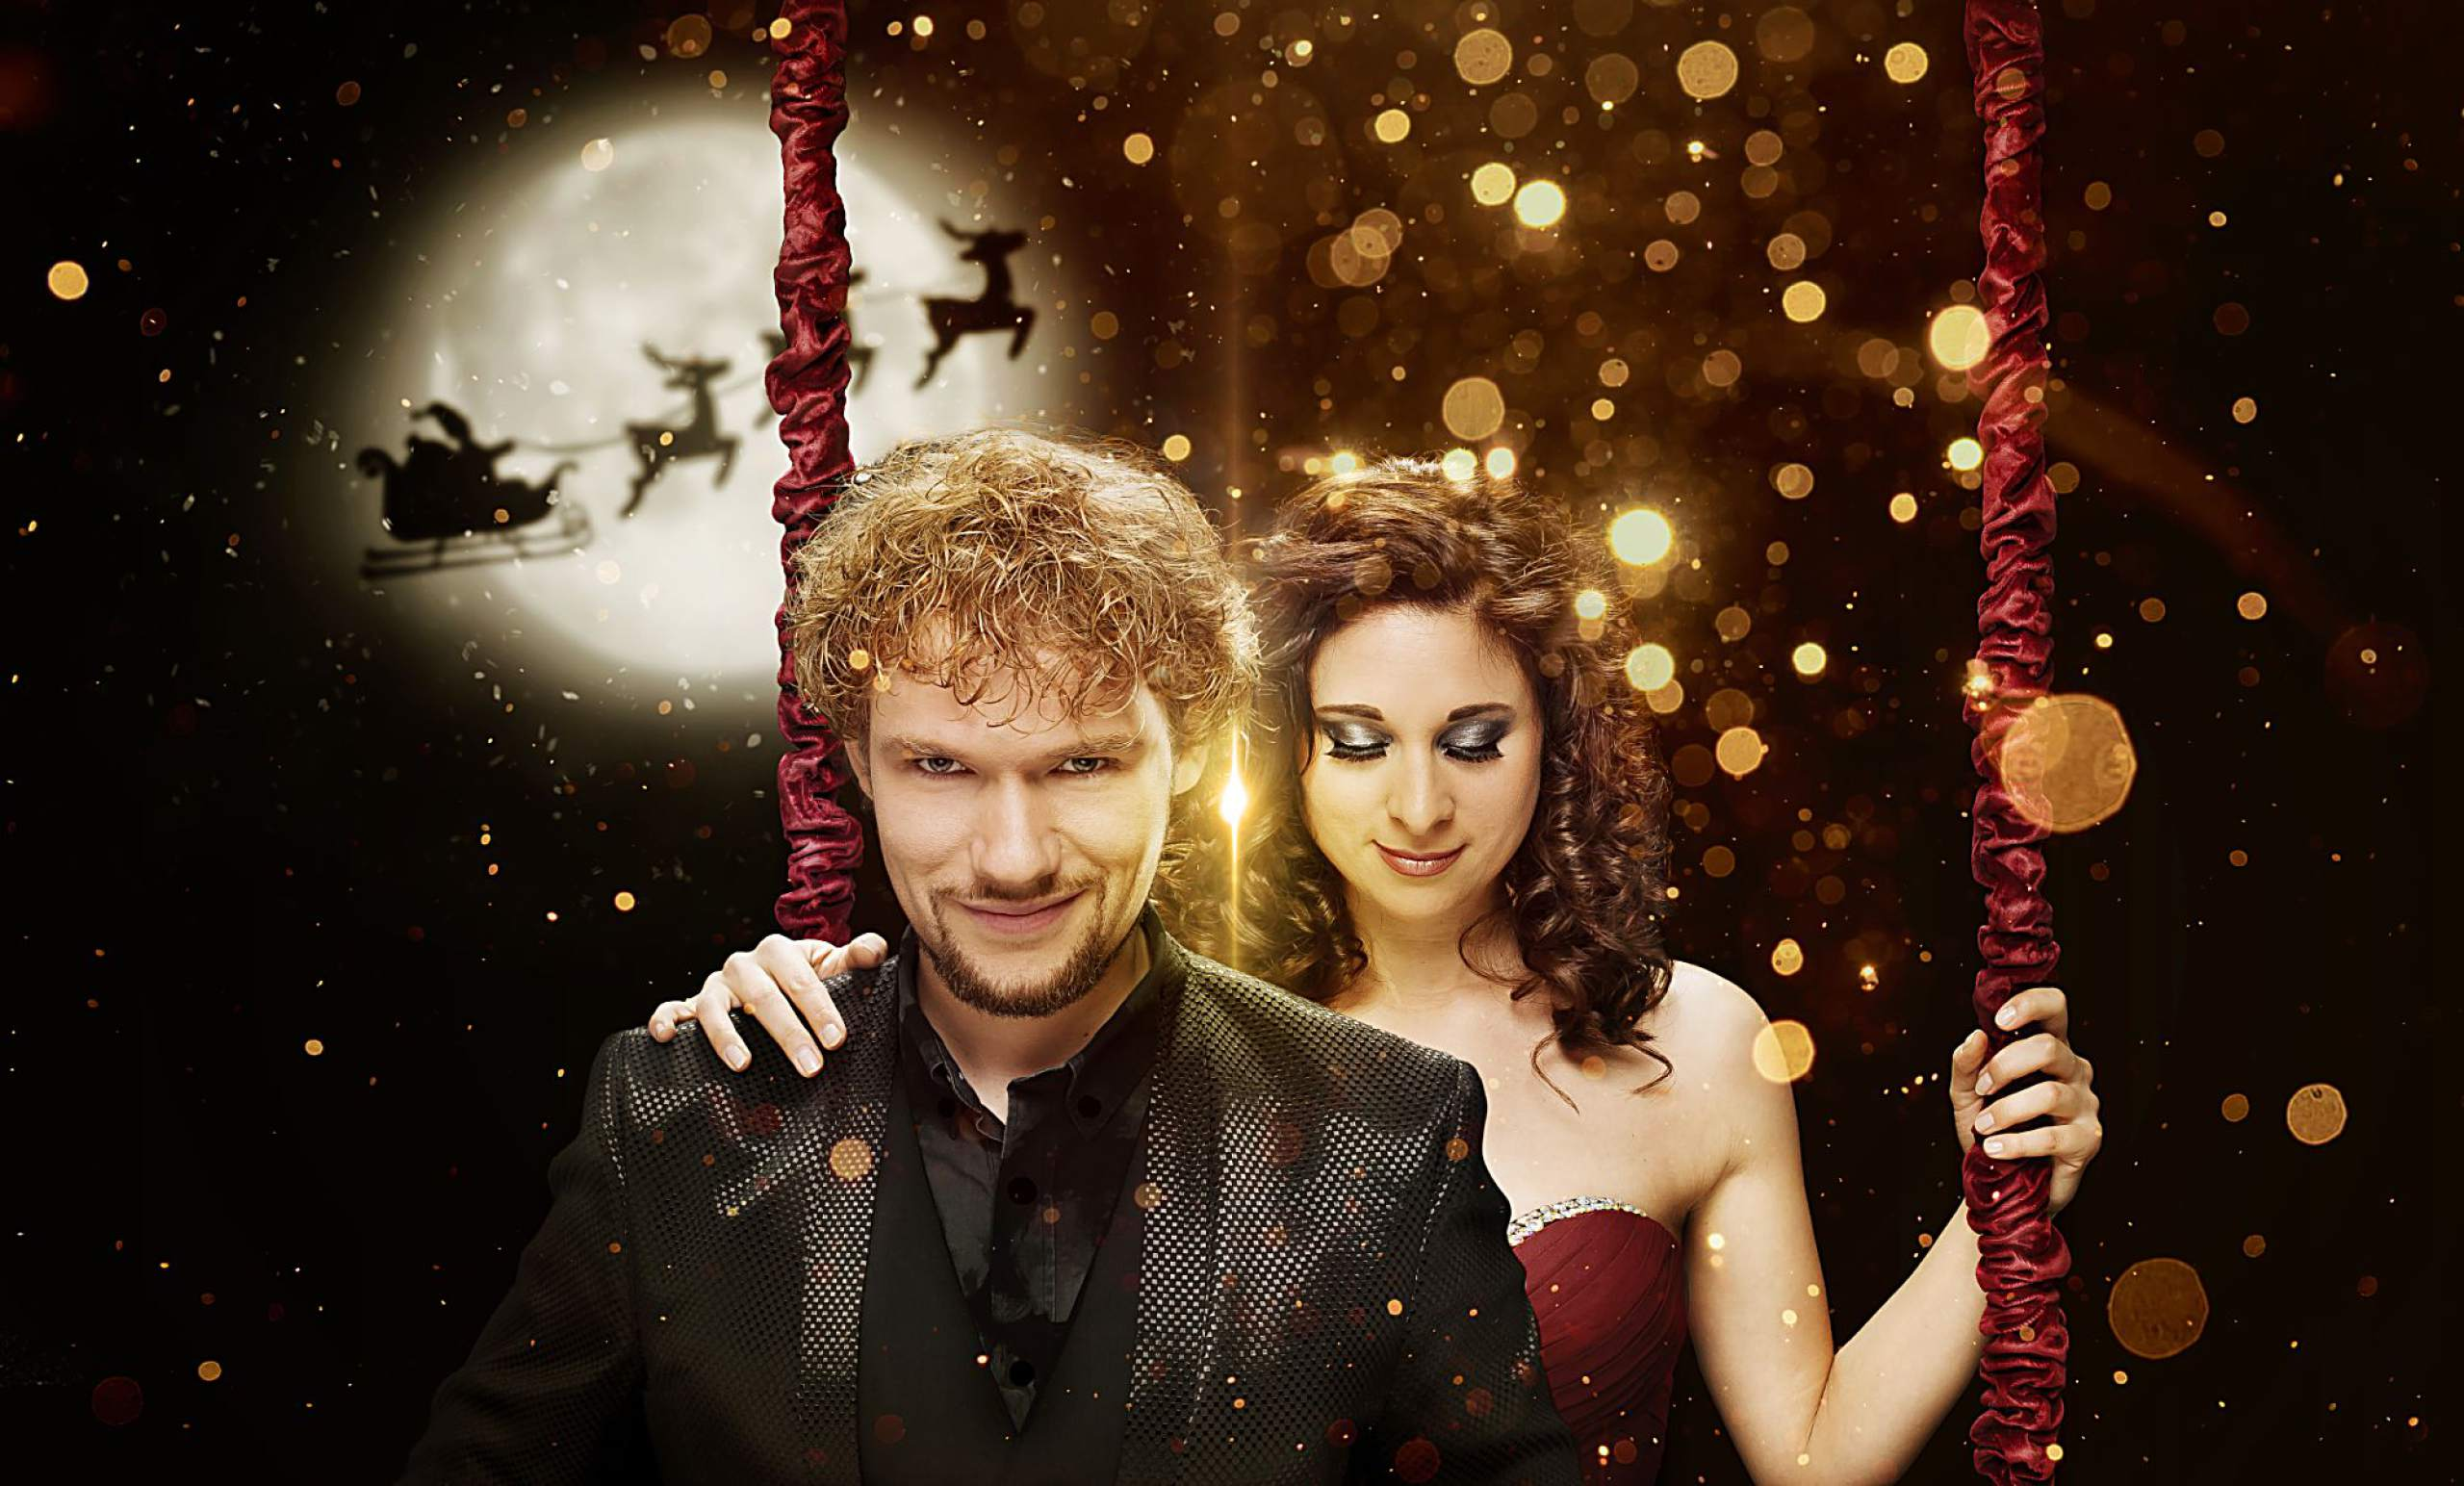 The Clairvoyants Christmas will complement the magic of the season